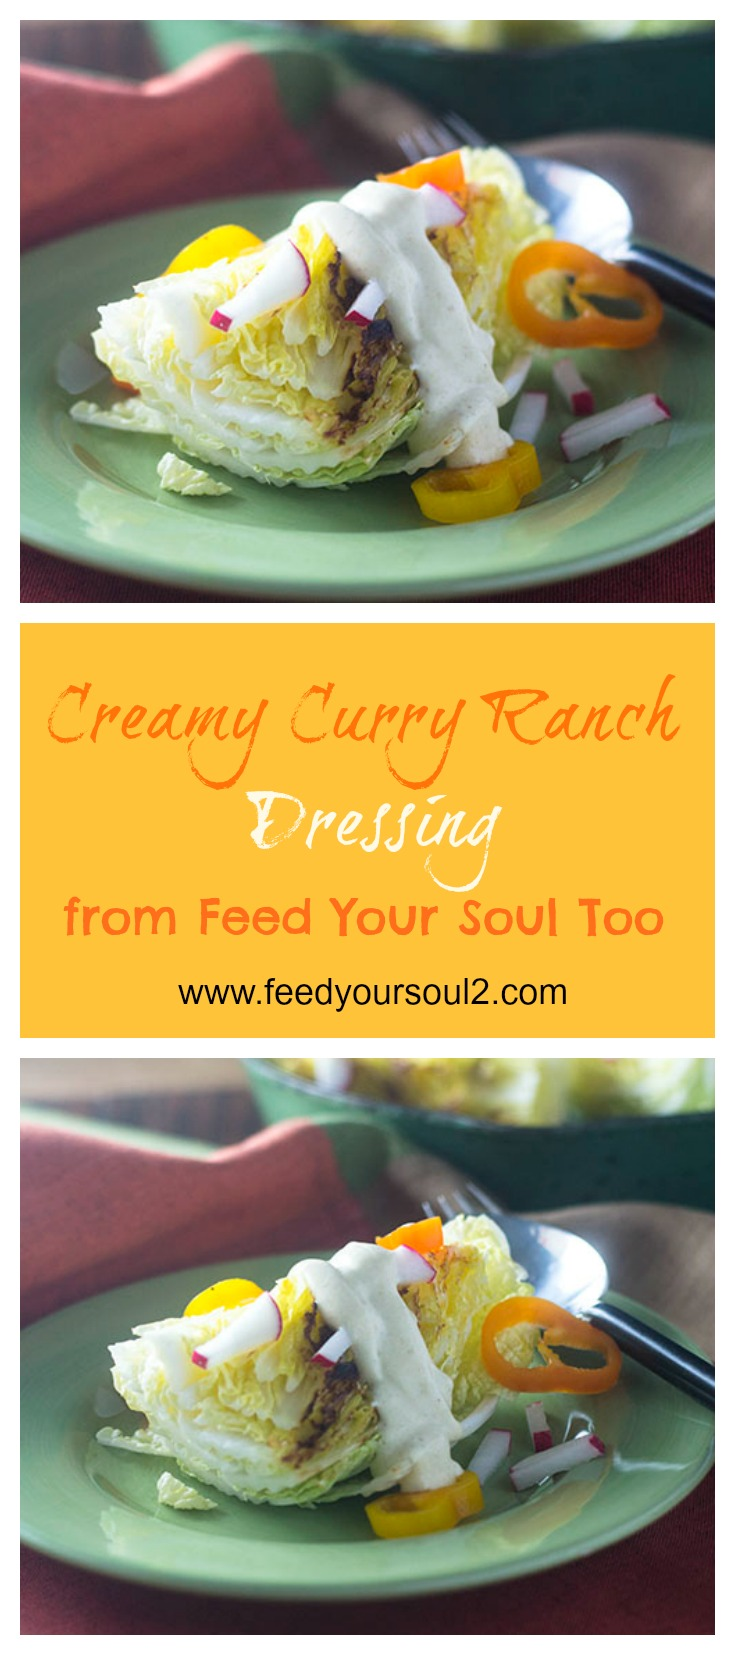 Creamy Curry Ranch Dressing #sidedish #indianfood #dressing #fatfree | feedyoursoul2.com